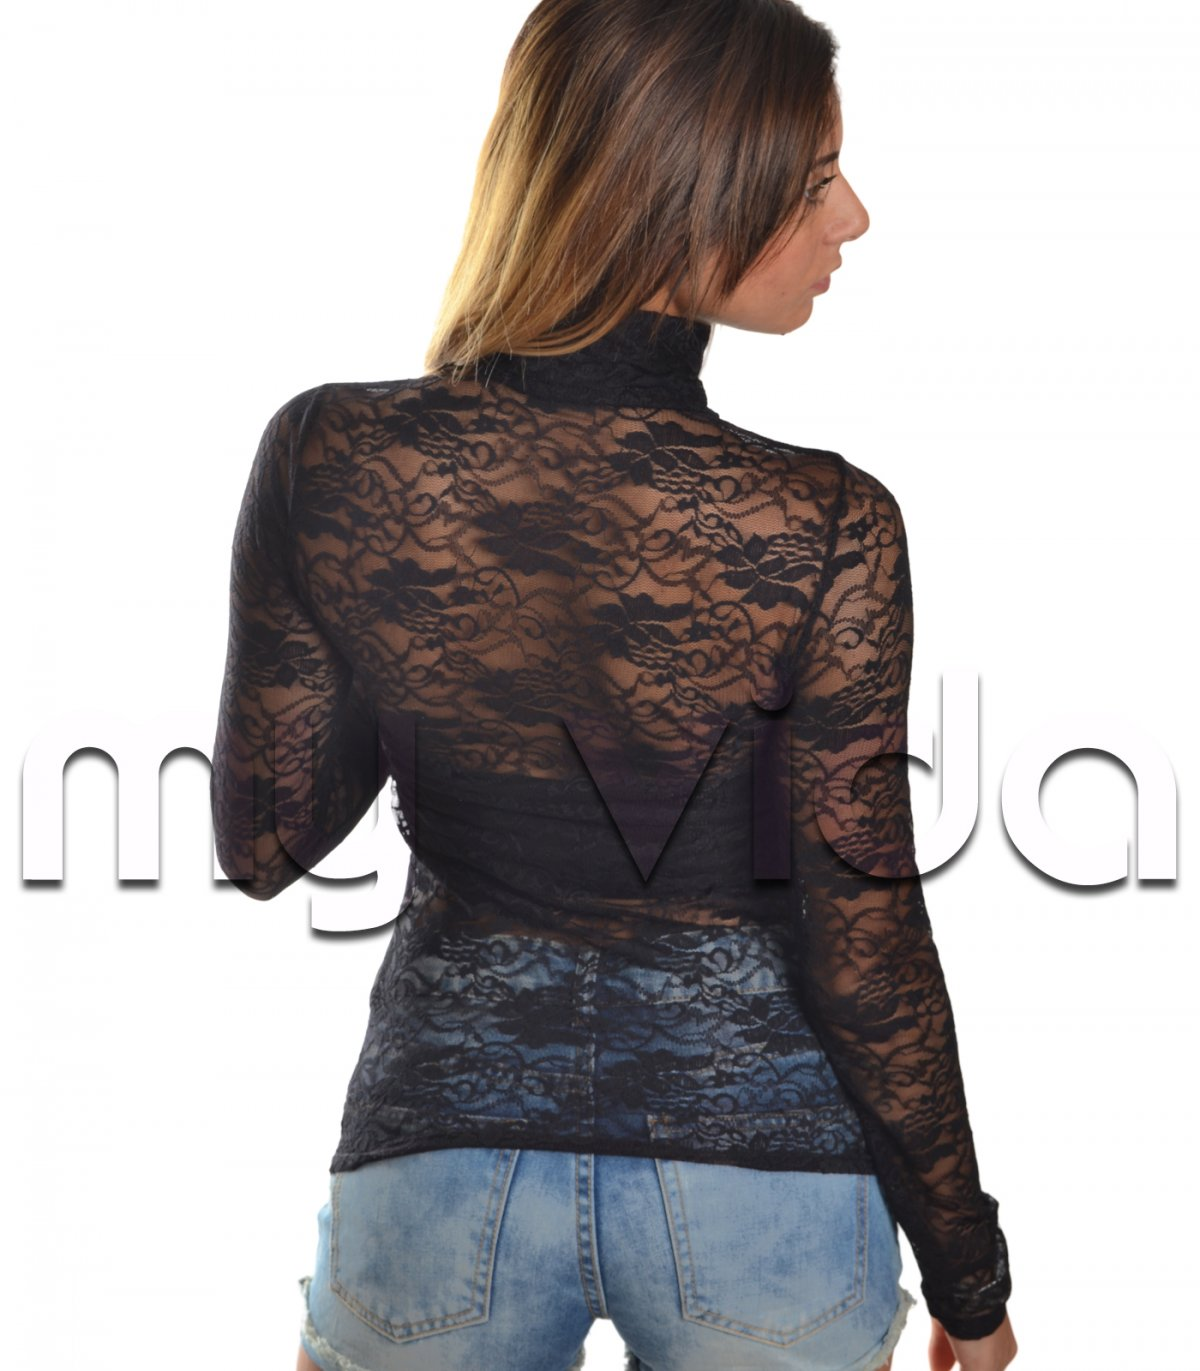 103ee556d5 Maglie sottogiacca donna pizzo dolcevita | My Vida